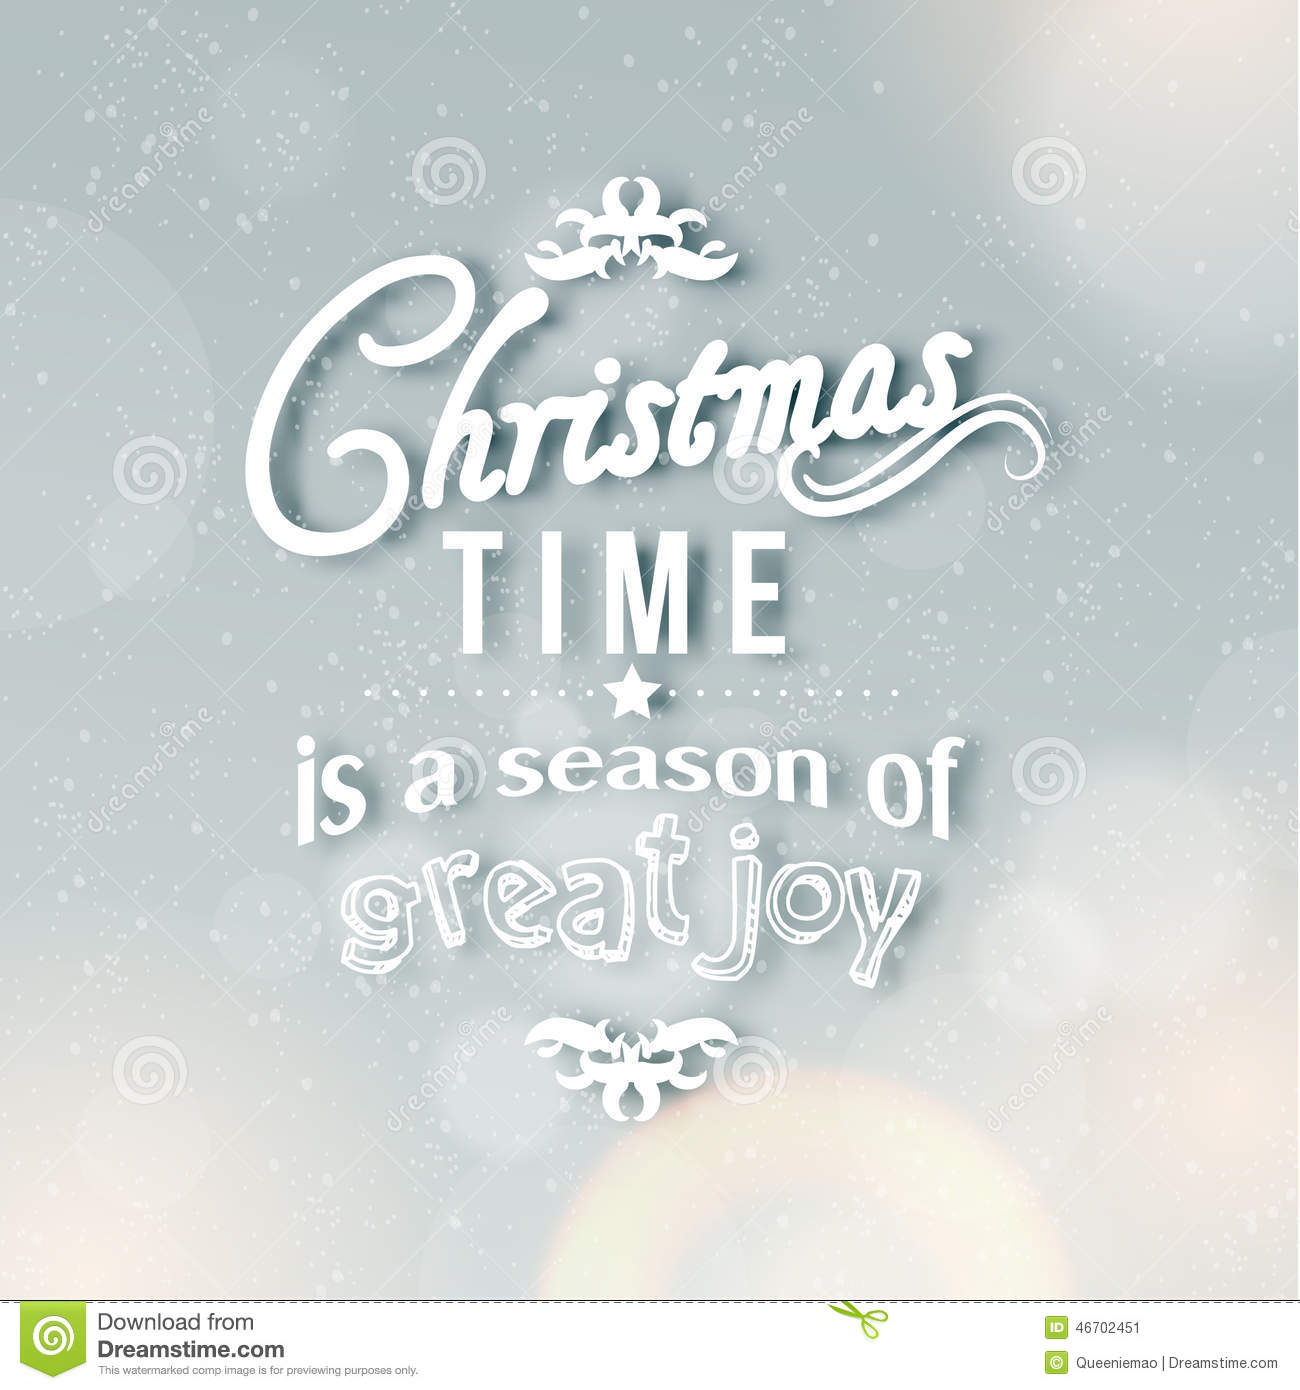 Merry Christmas Season Greetings Quote Stock Illustration